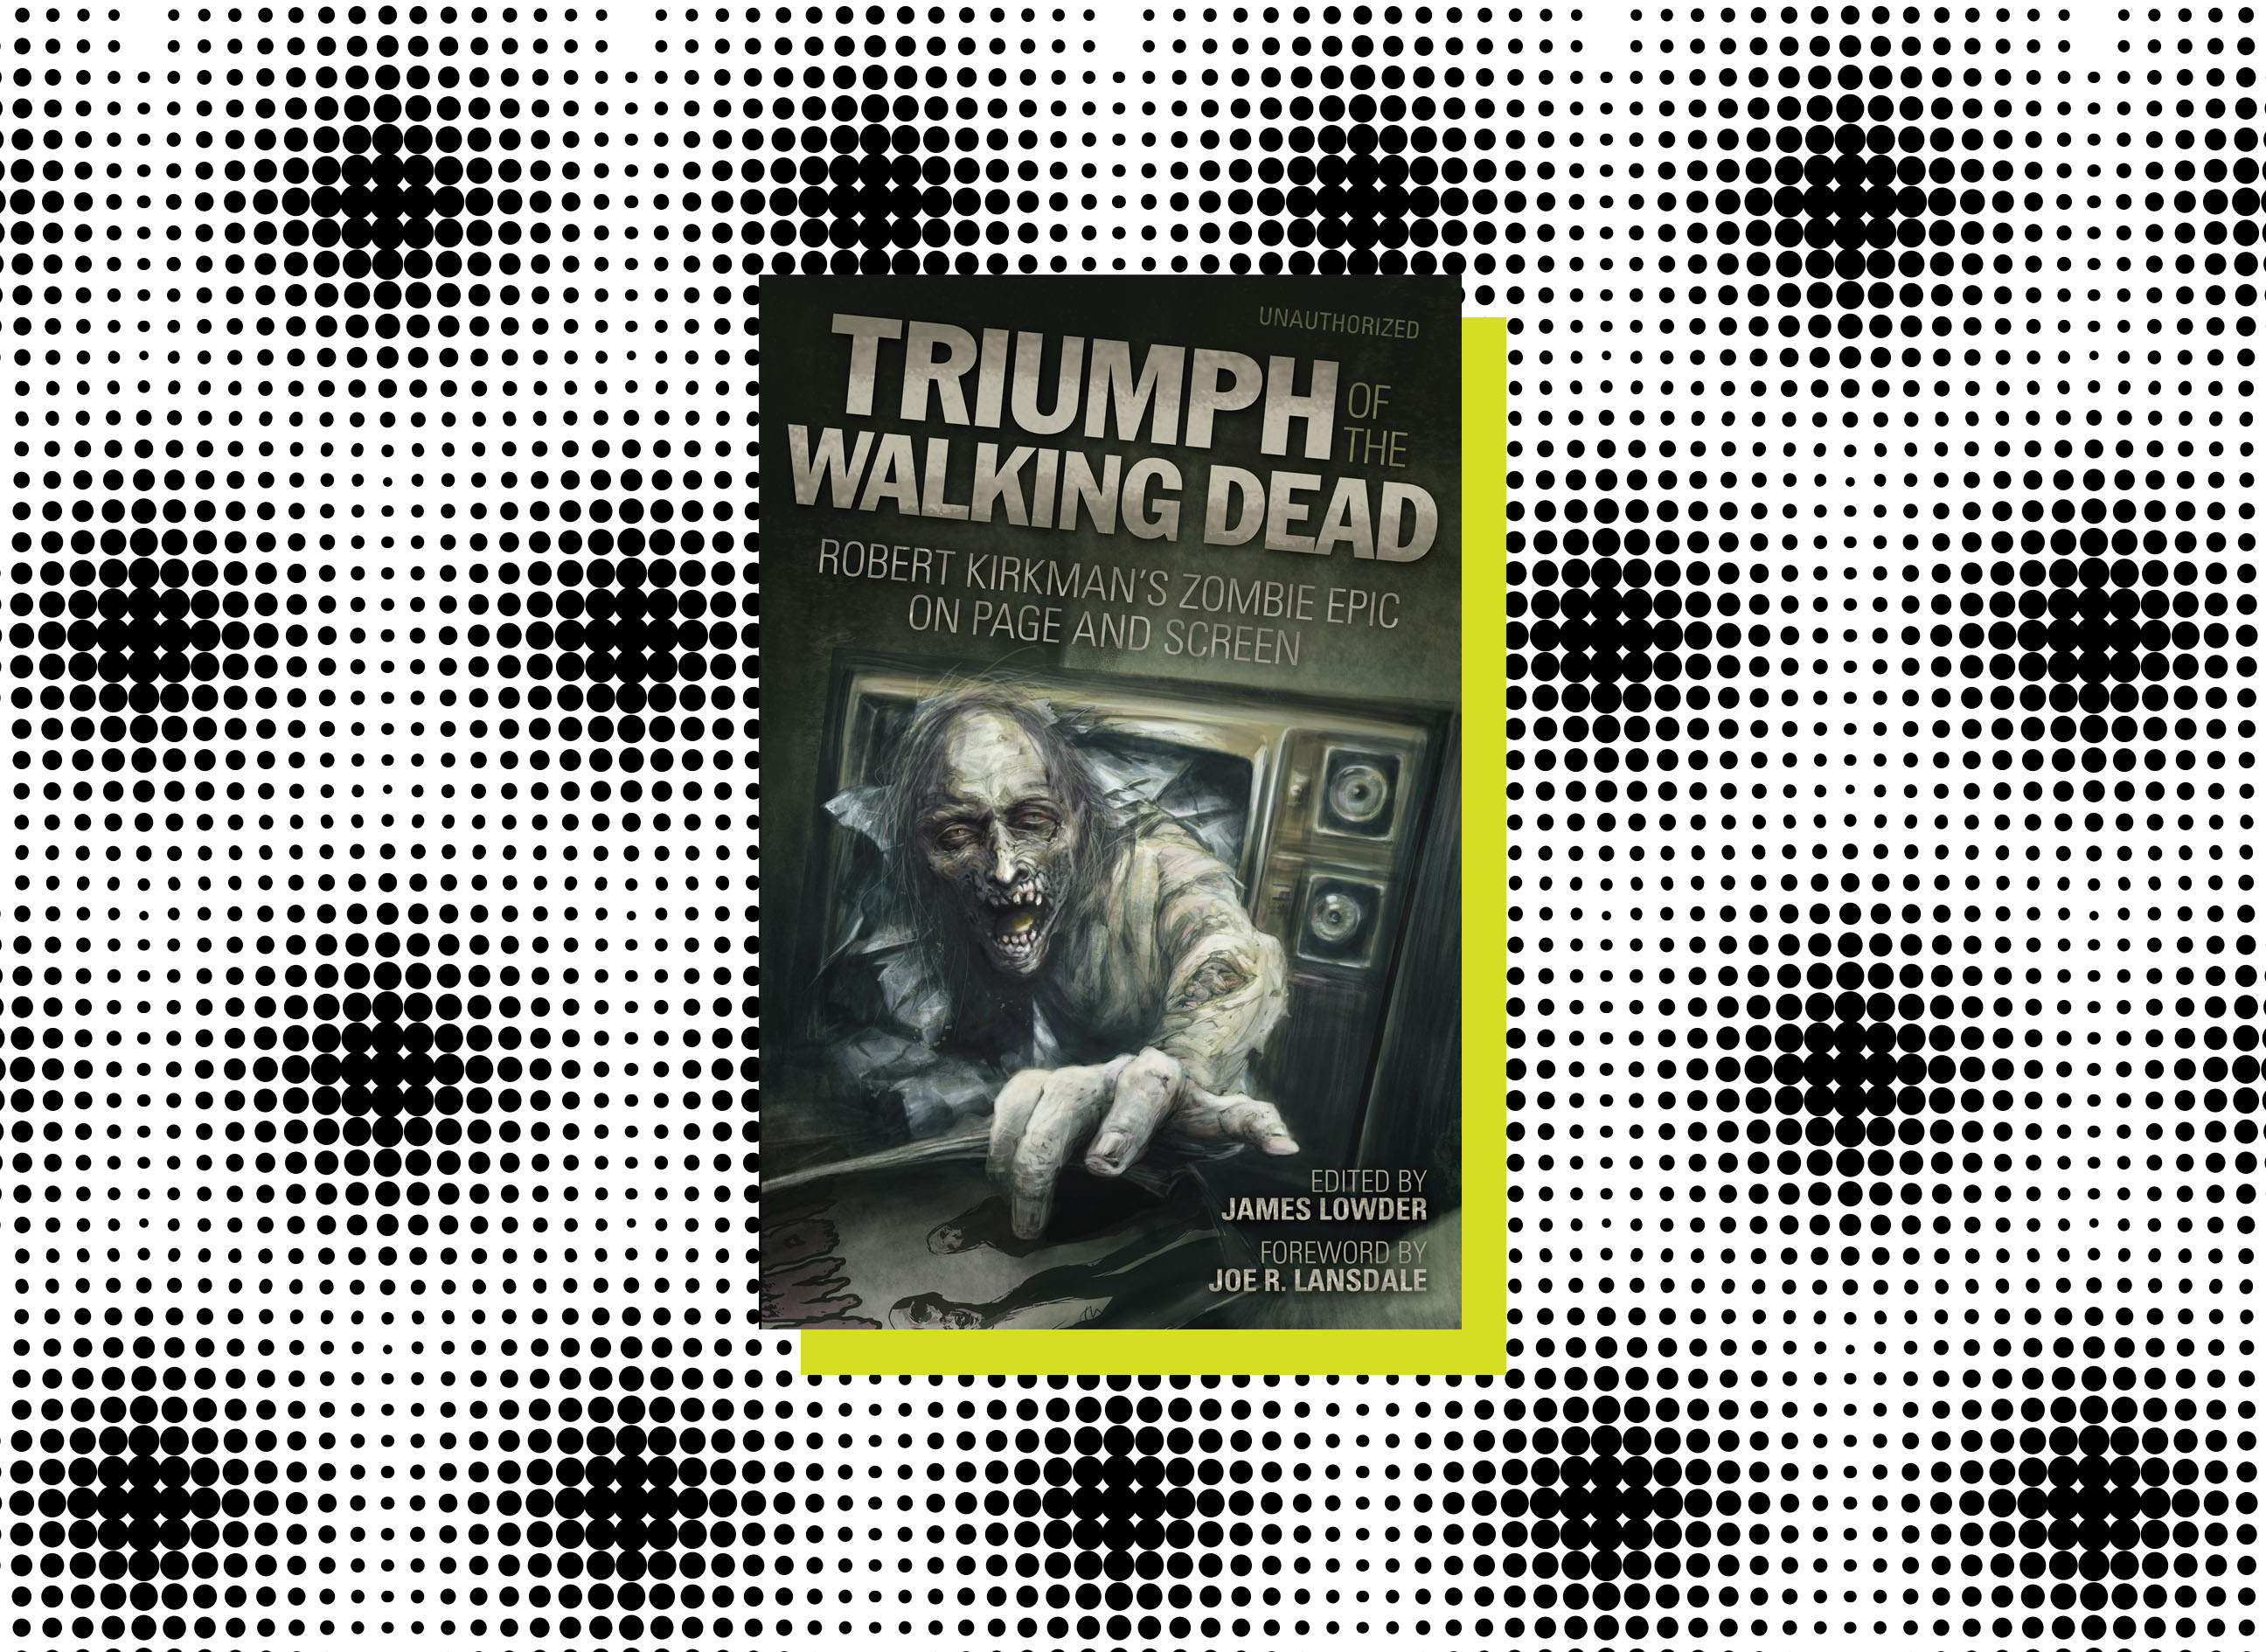 Triumph of The Walking Dead